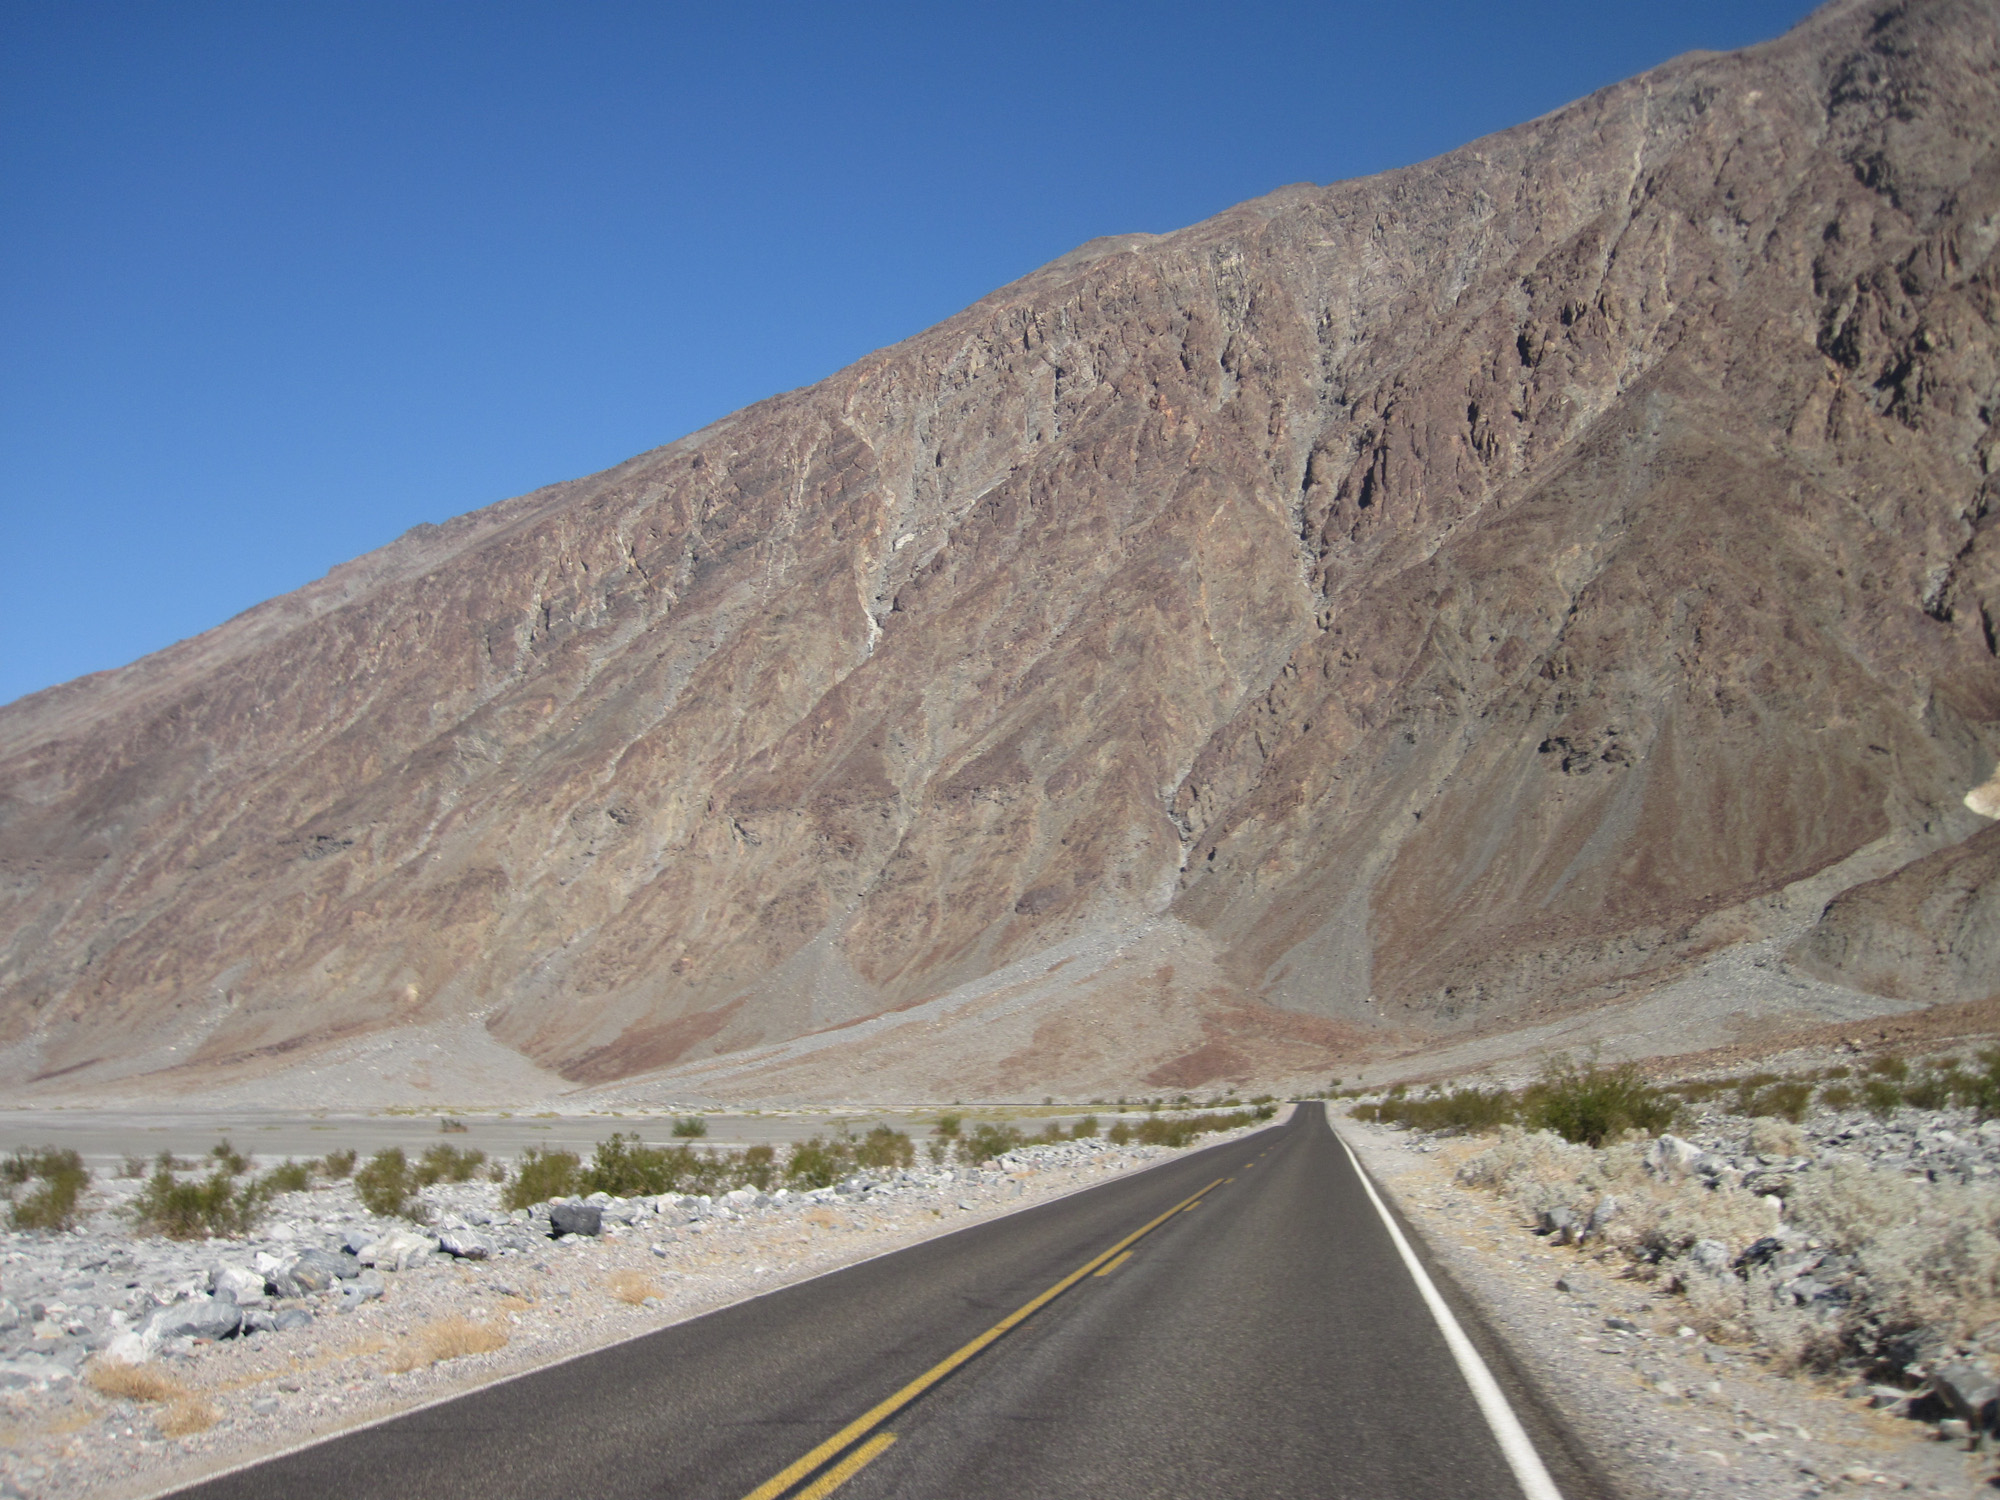 Heading to Badwater